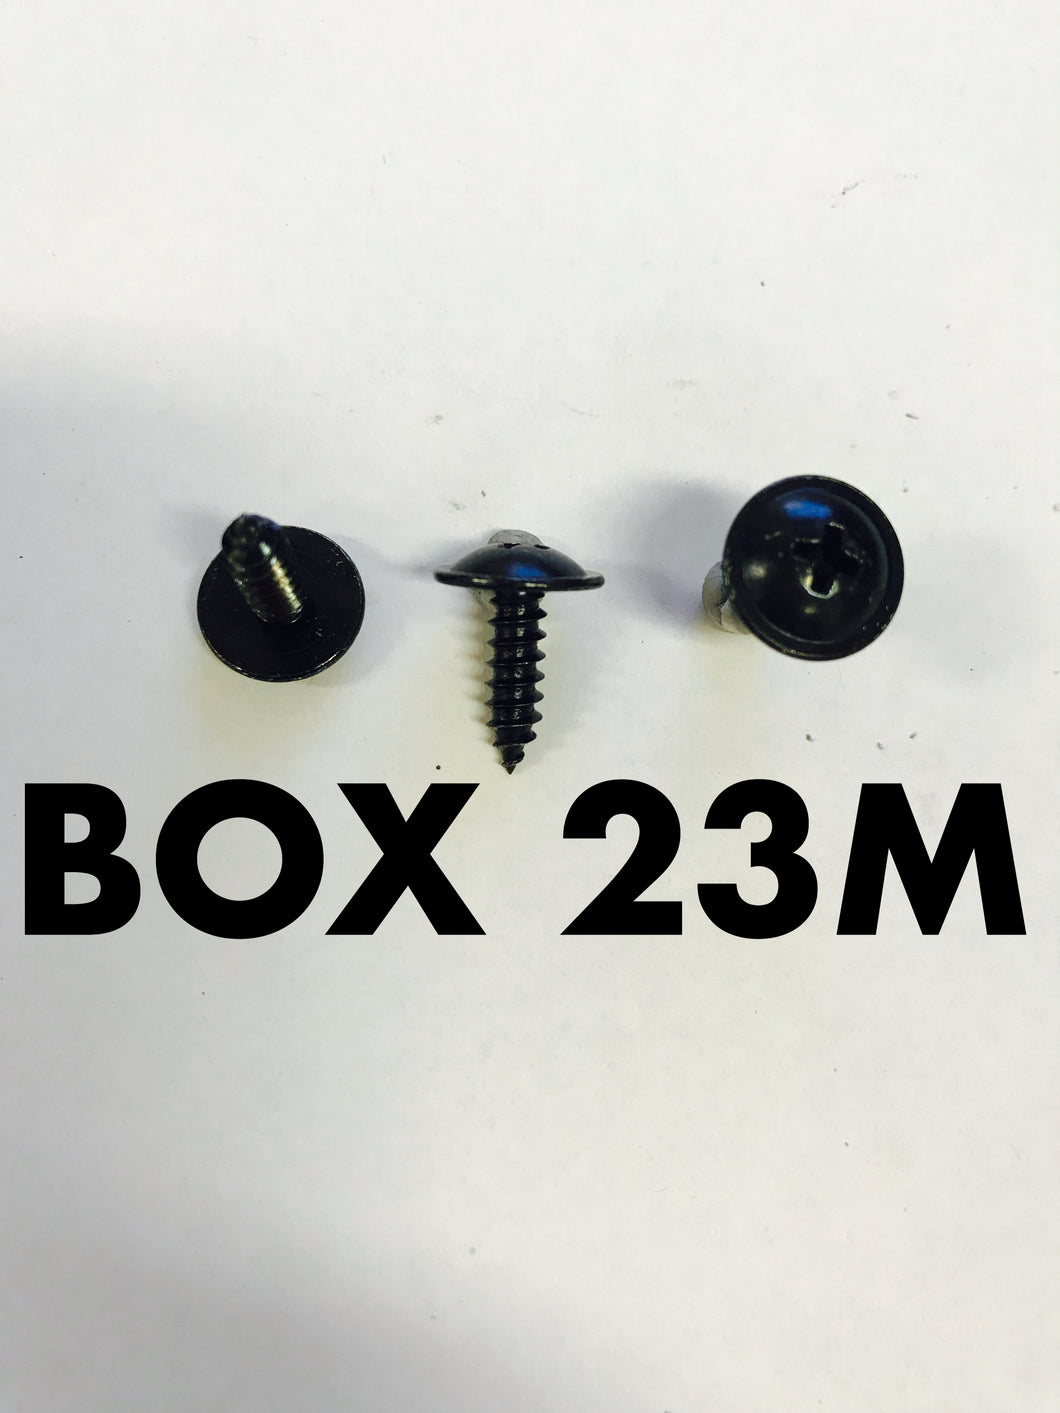 Carc;lips Box 23M 8g x 12mm Screws - Colourfast Auto